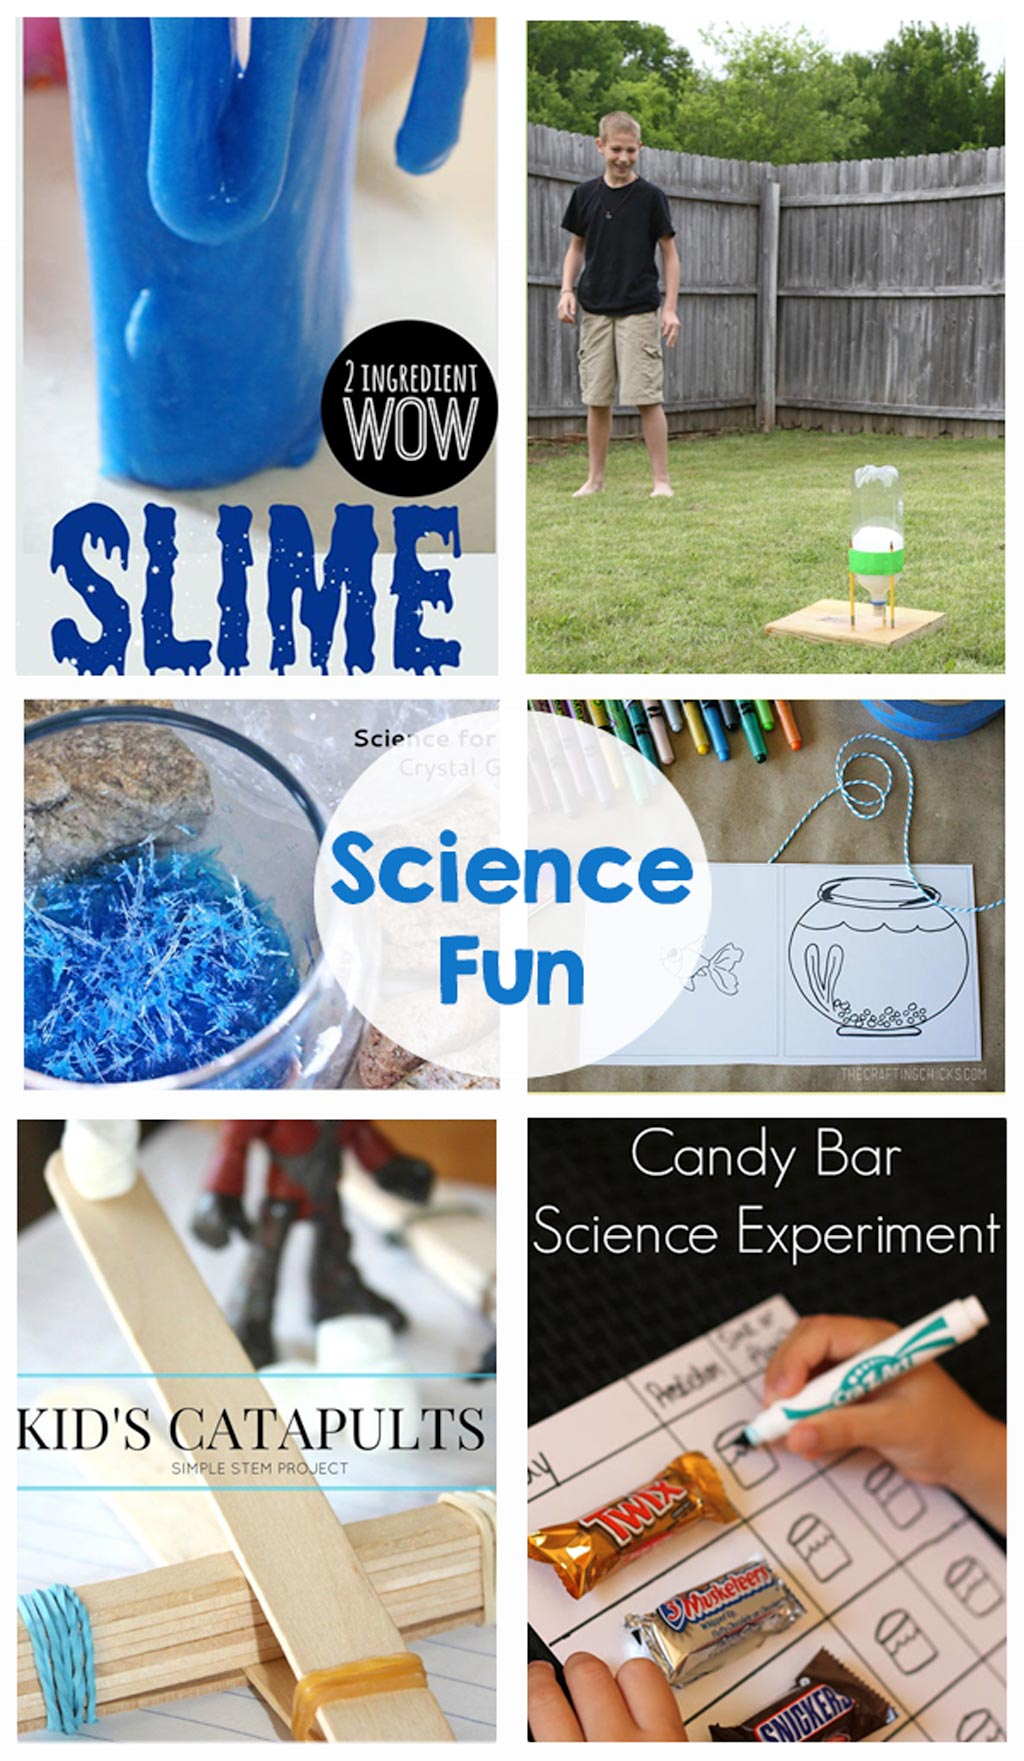 Water Fireworks Science Experiment - The Crafting Chicks